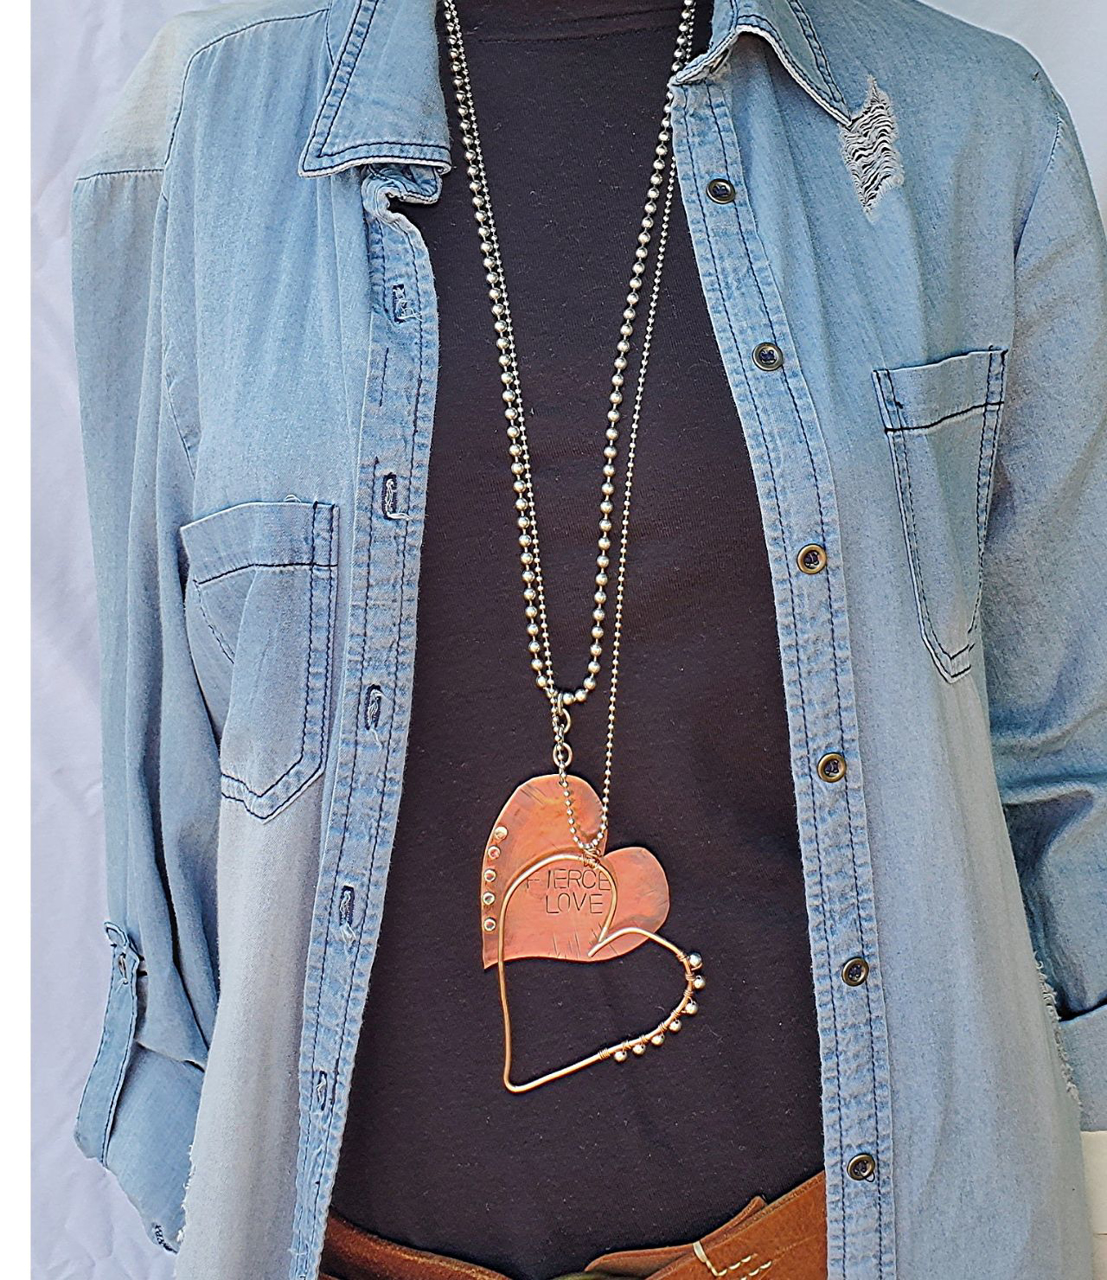 layered copper heart necklaces with denim outfit